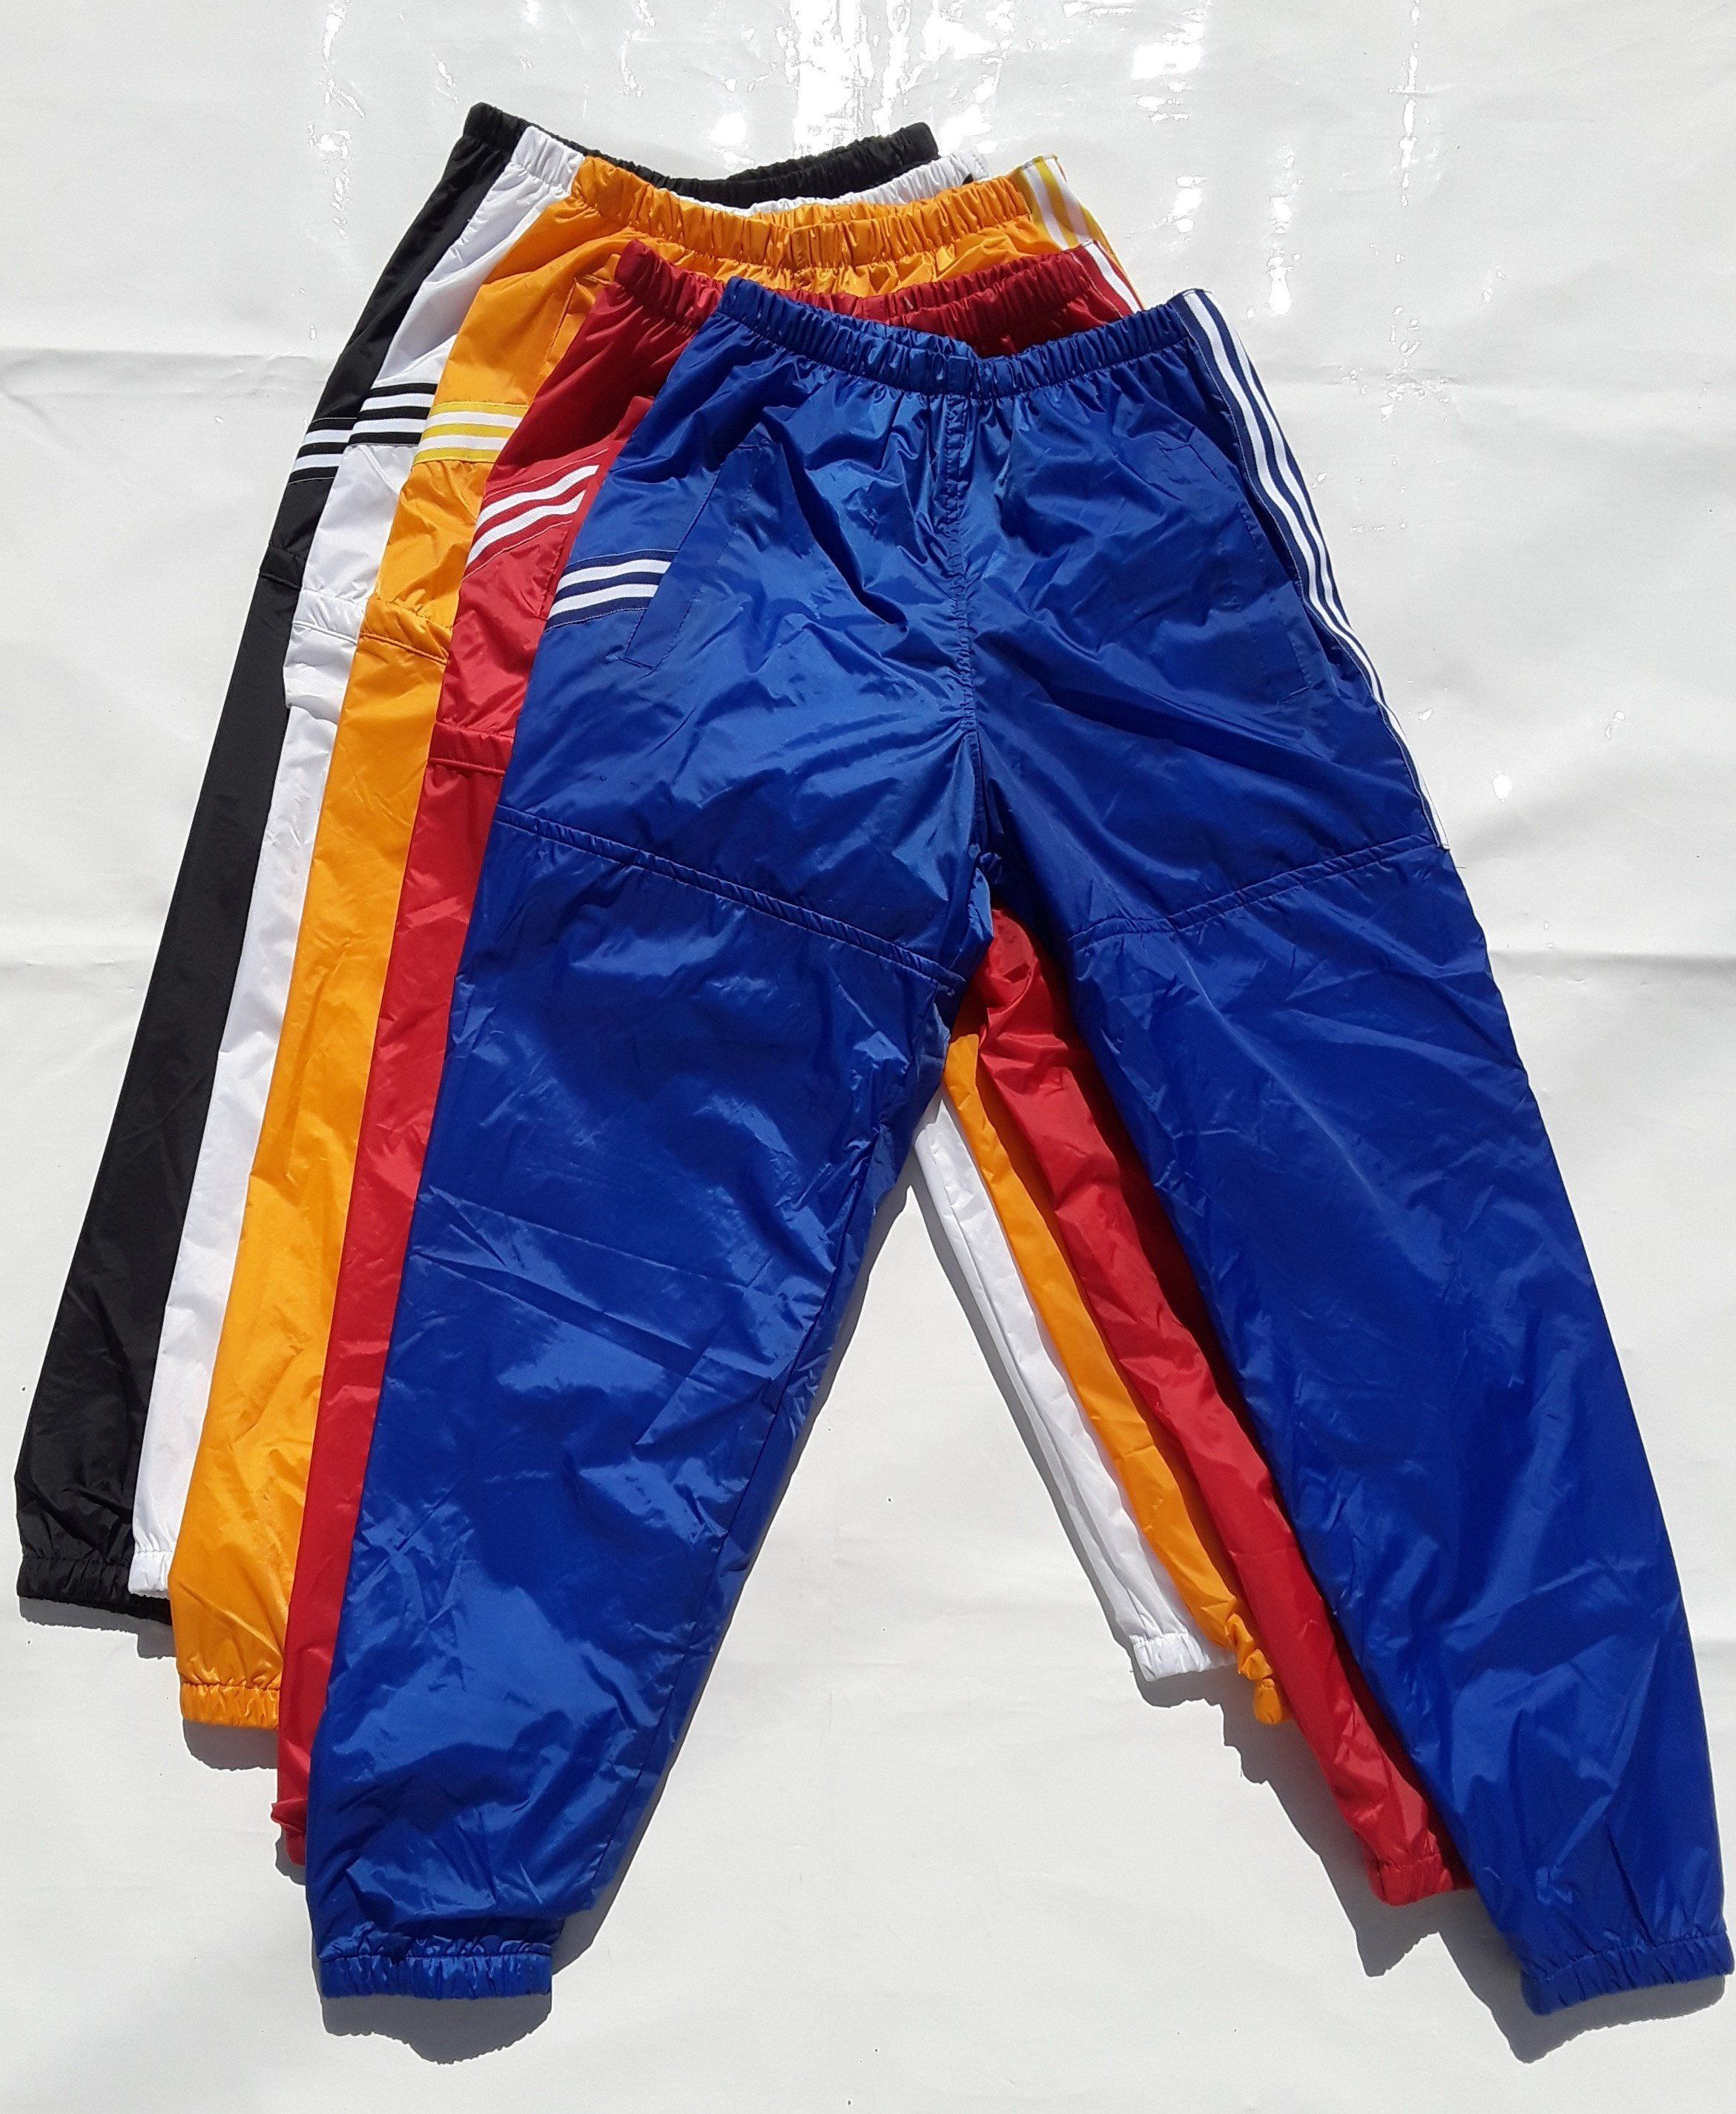 a9ad6804e windbreaker pants chaotic stripe pant red pant royal blue pant windbreaker  pants womens windbreaker pant yellow pant white pant stripe pant by  rojasclothing ...